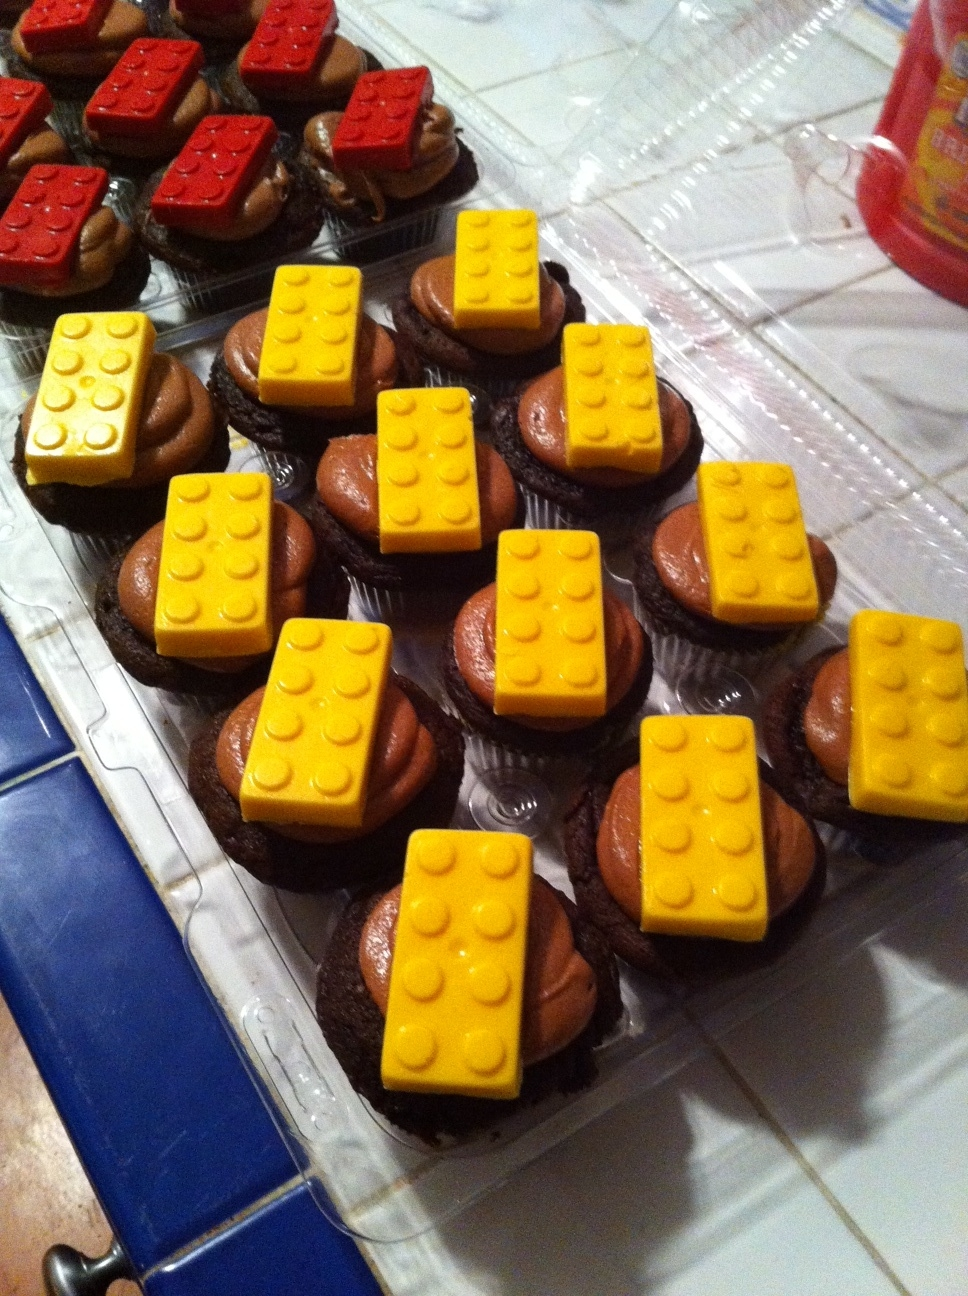 Chocolate Cupcakes with Lego Topper